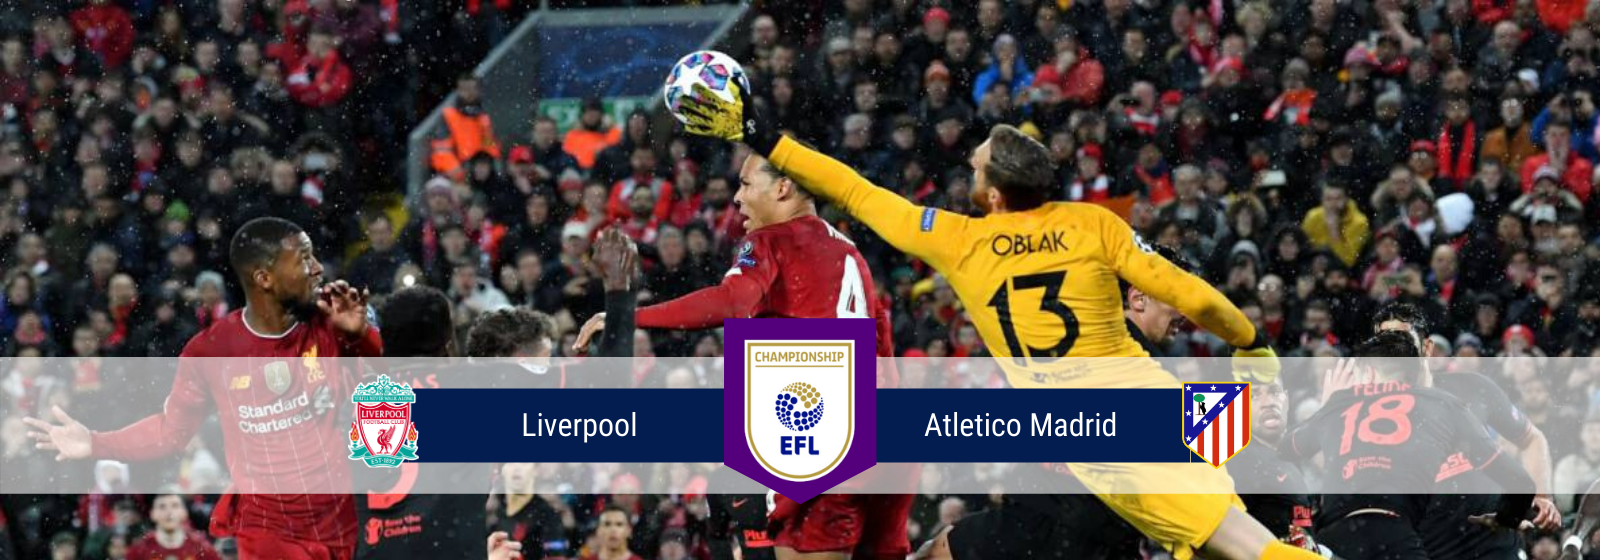 Asianconnect: Liverpool vs Atletico Madrid Odds for March 11, 2020